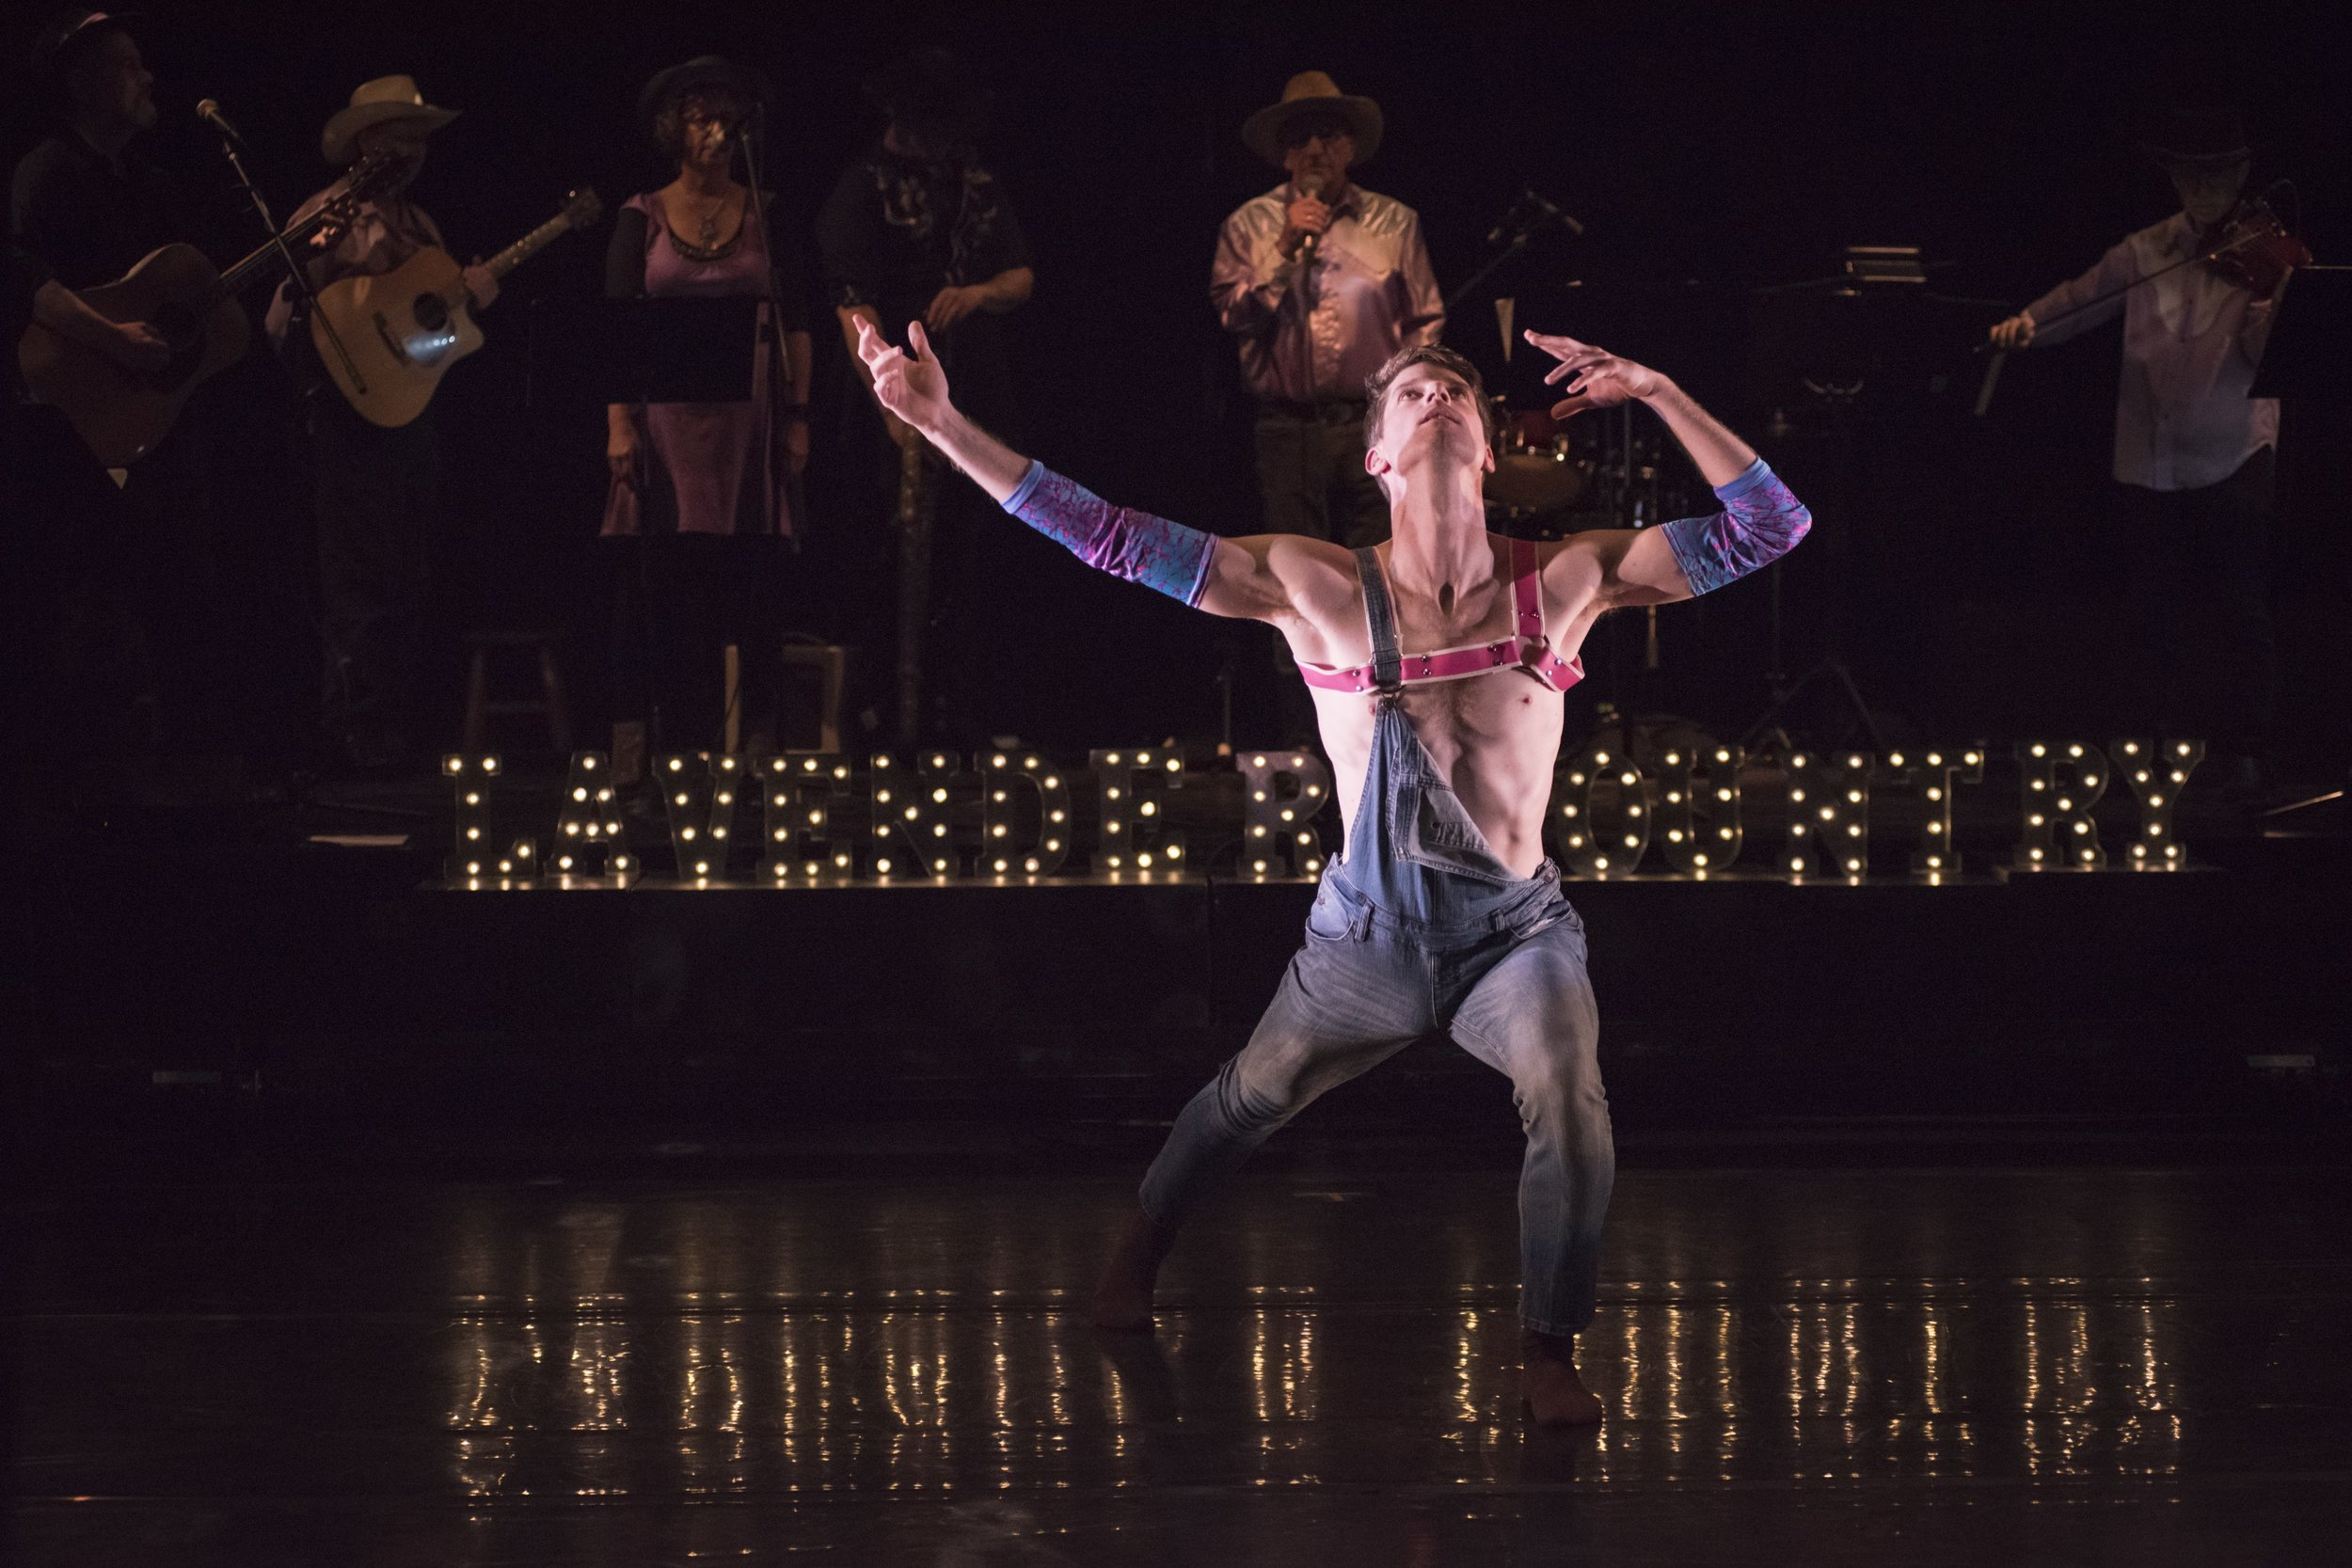 Scott Marlowe in Thiessen's and Dekkers'  Lavender Country,  costume design by Christian Squires, photo by Natalia Perez